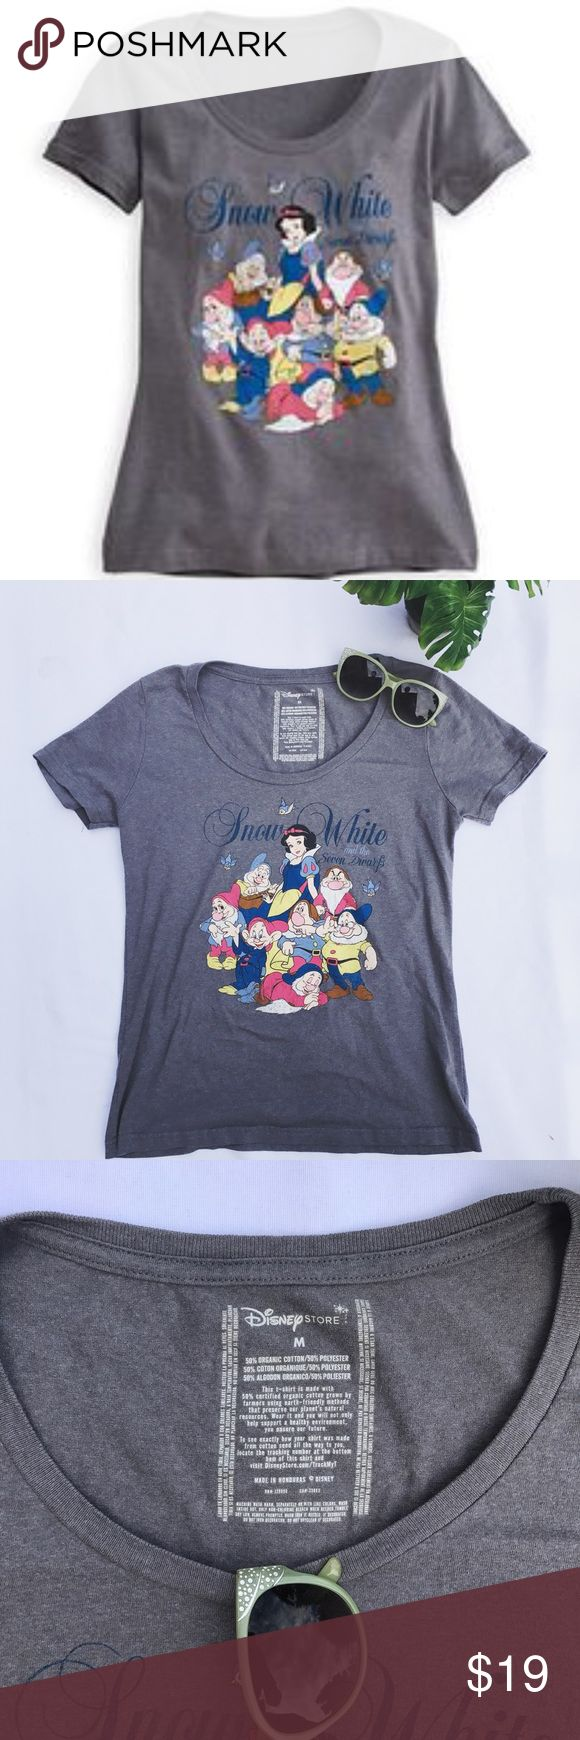 Friday sale!❄️Snow White Tee EUC ❄️ Snow White ❄️ t-shirt. Only worn a couple of times. 50% organic cotton 50% polyester. Machine wash, tumble dry low. Size chart above for your convenience. Buyer assumes responsibility for fit/comfort/personal taste. Listing is for shirt only. Actual colors may vary. ❌no trades ✔️Poshmark only. Washed and ready to wear 🙌🏻 Disney Tops Tees - Short Sleeve